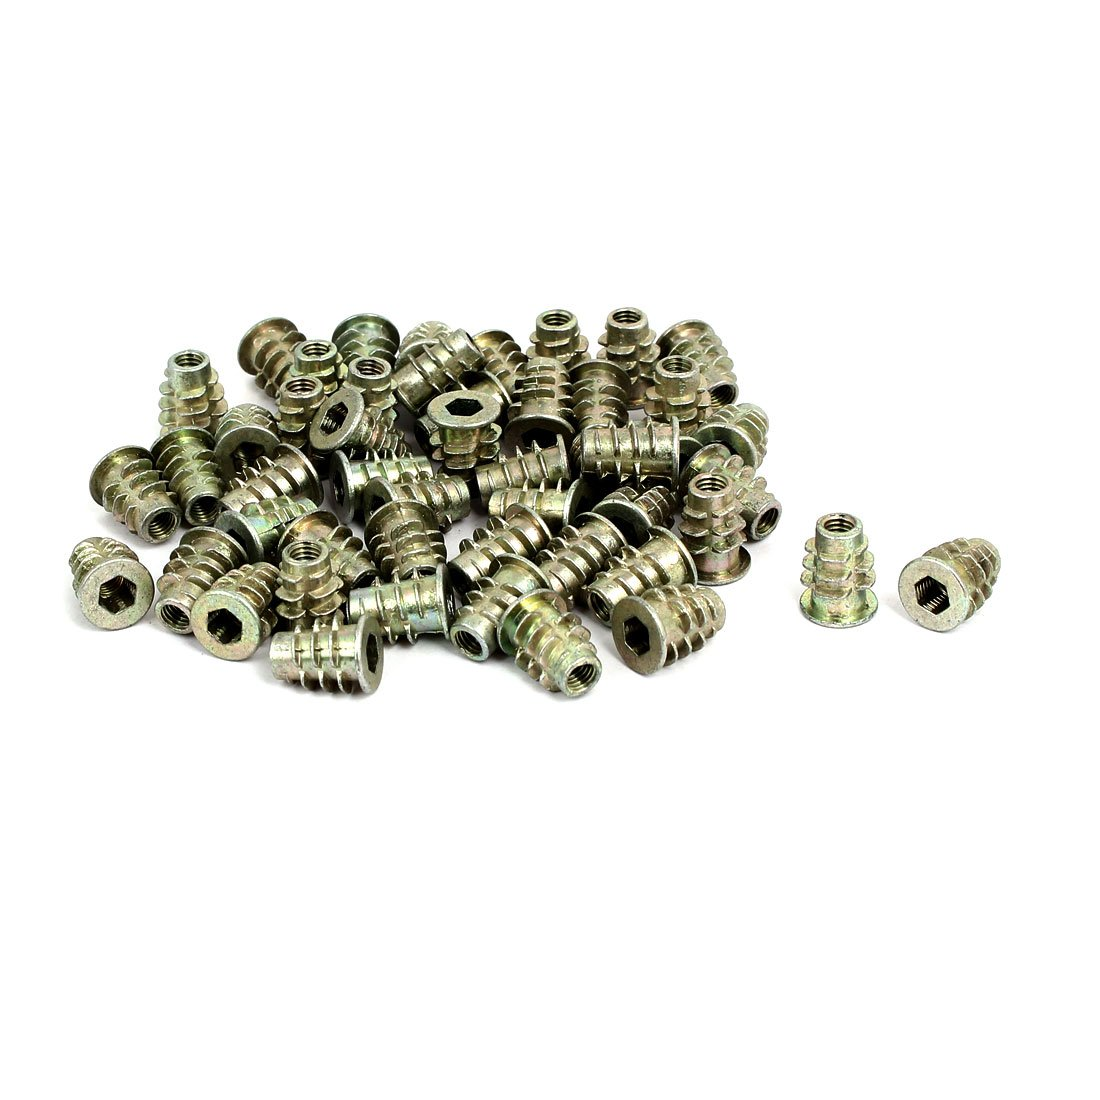 uxcell M5x14mm Interface Hex Socket Threaded Insert Nuts 50pcs for Wood Furniture